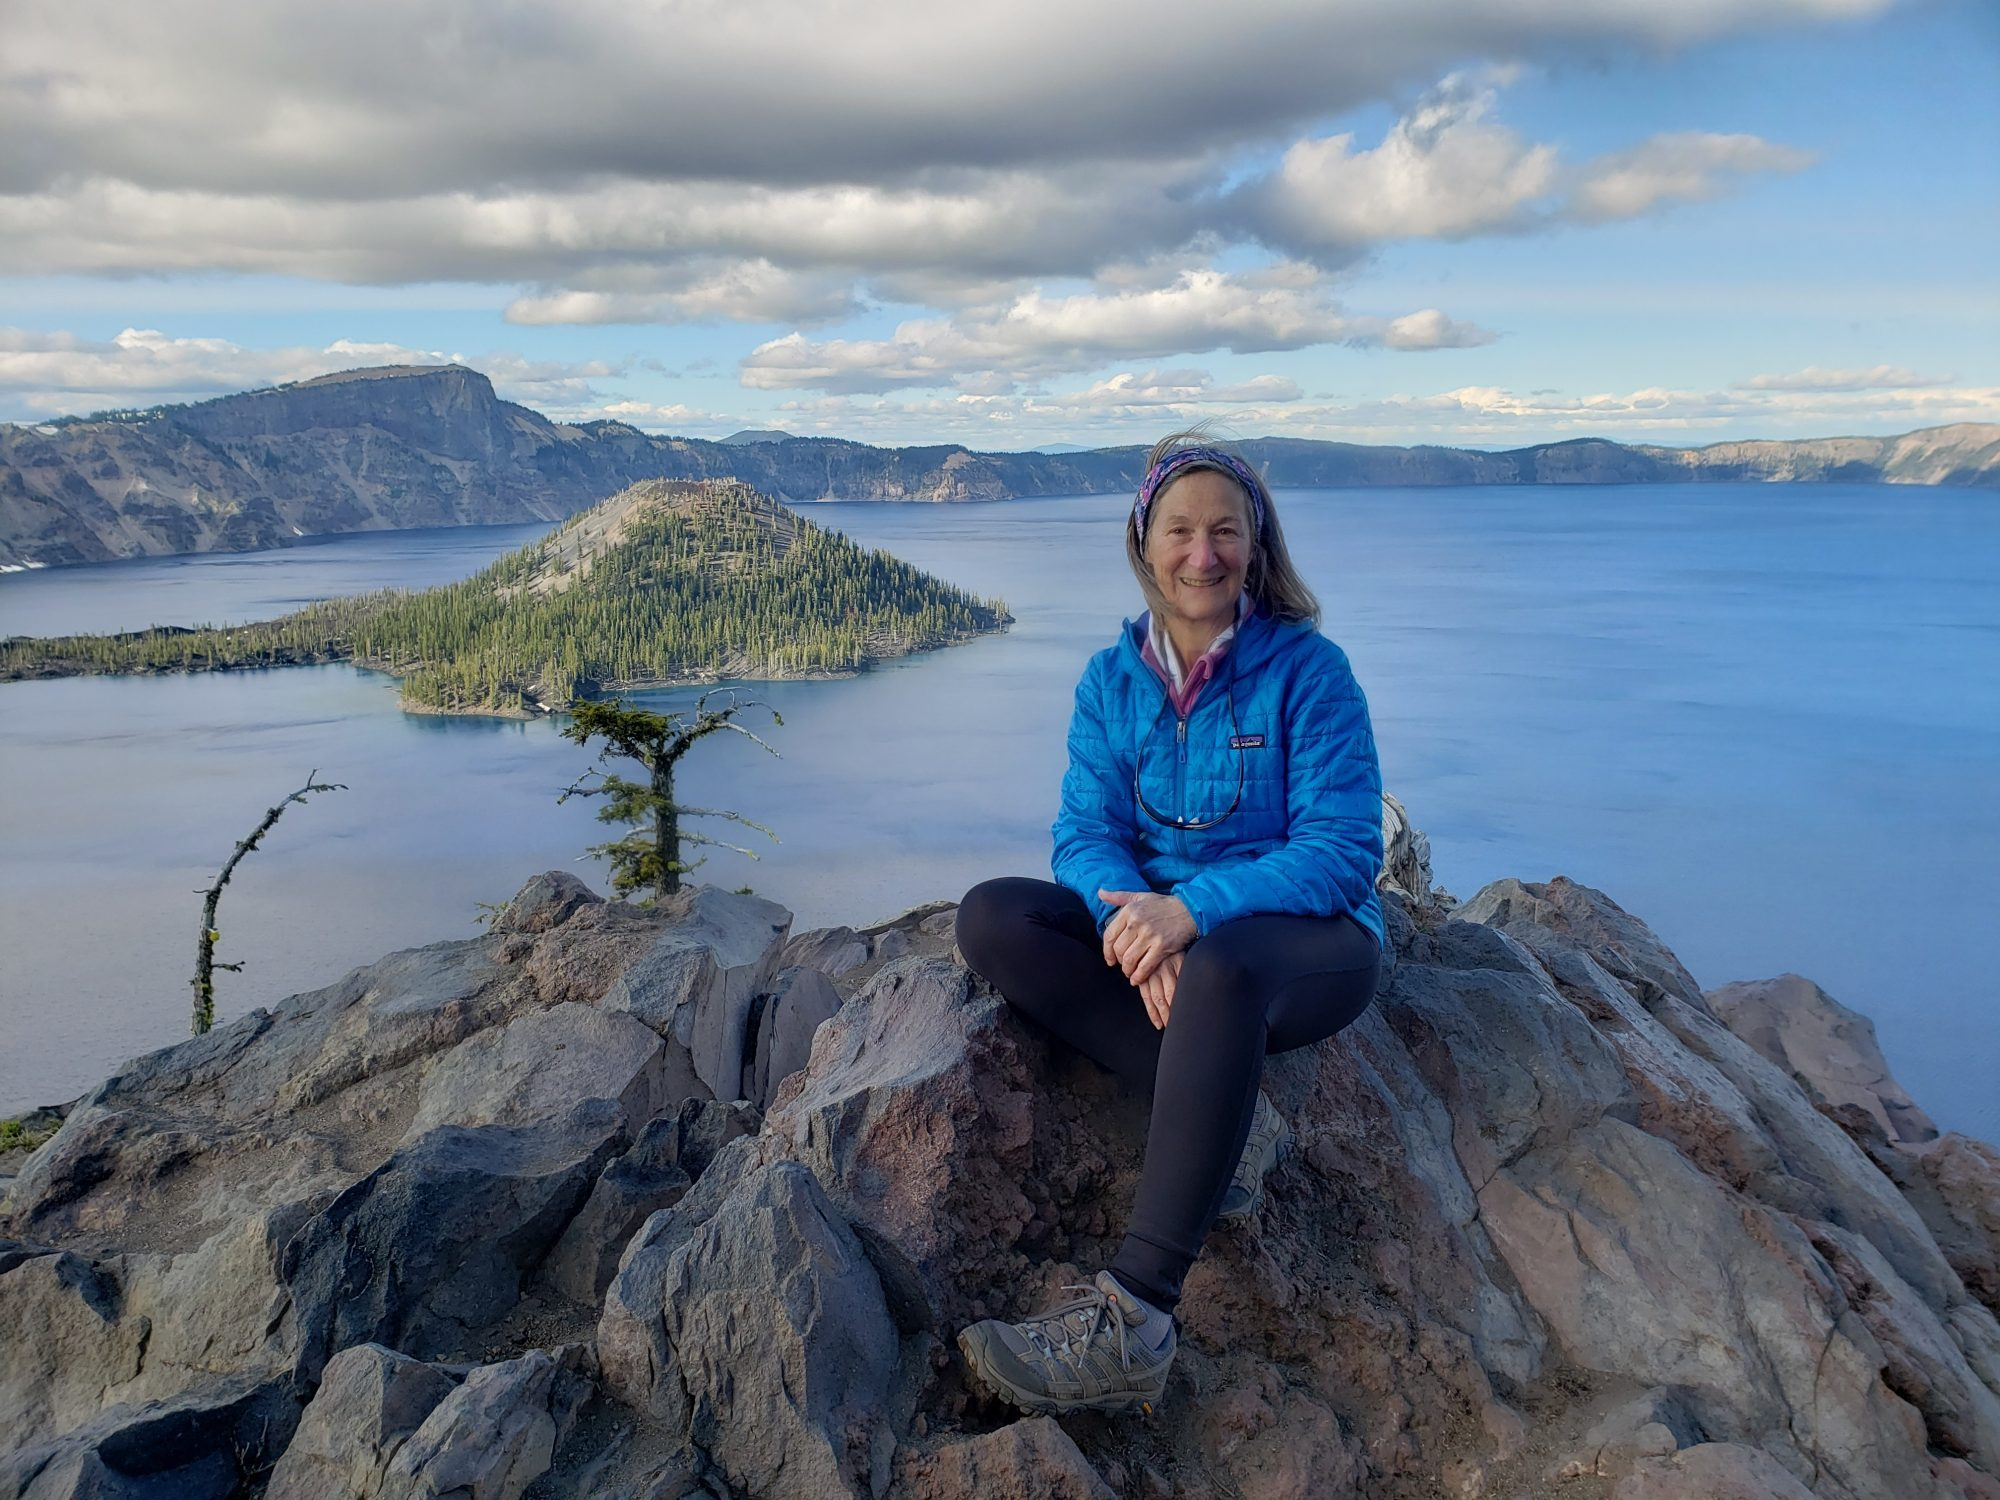 Debra Mailman sits atop a stone outcropping in front of a body of water.